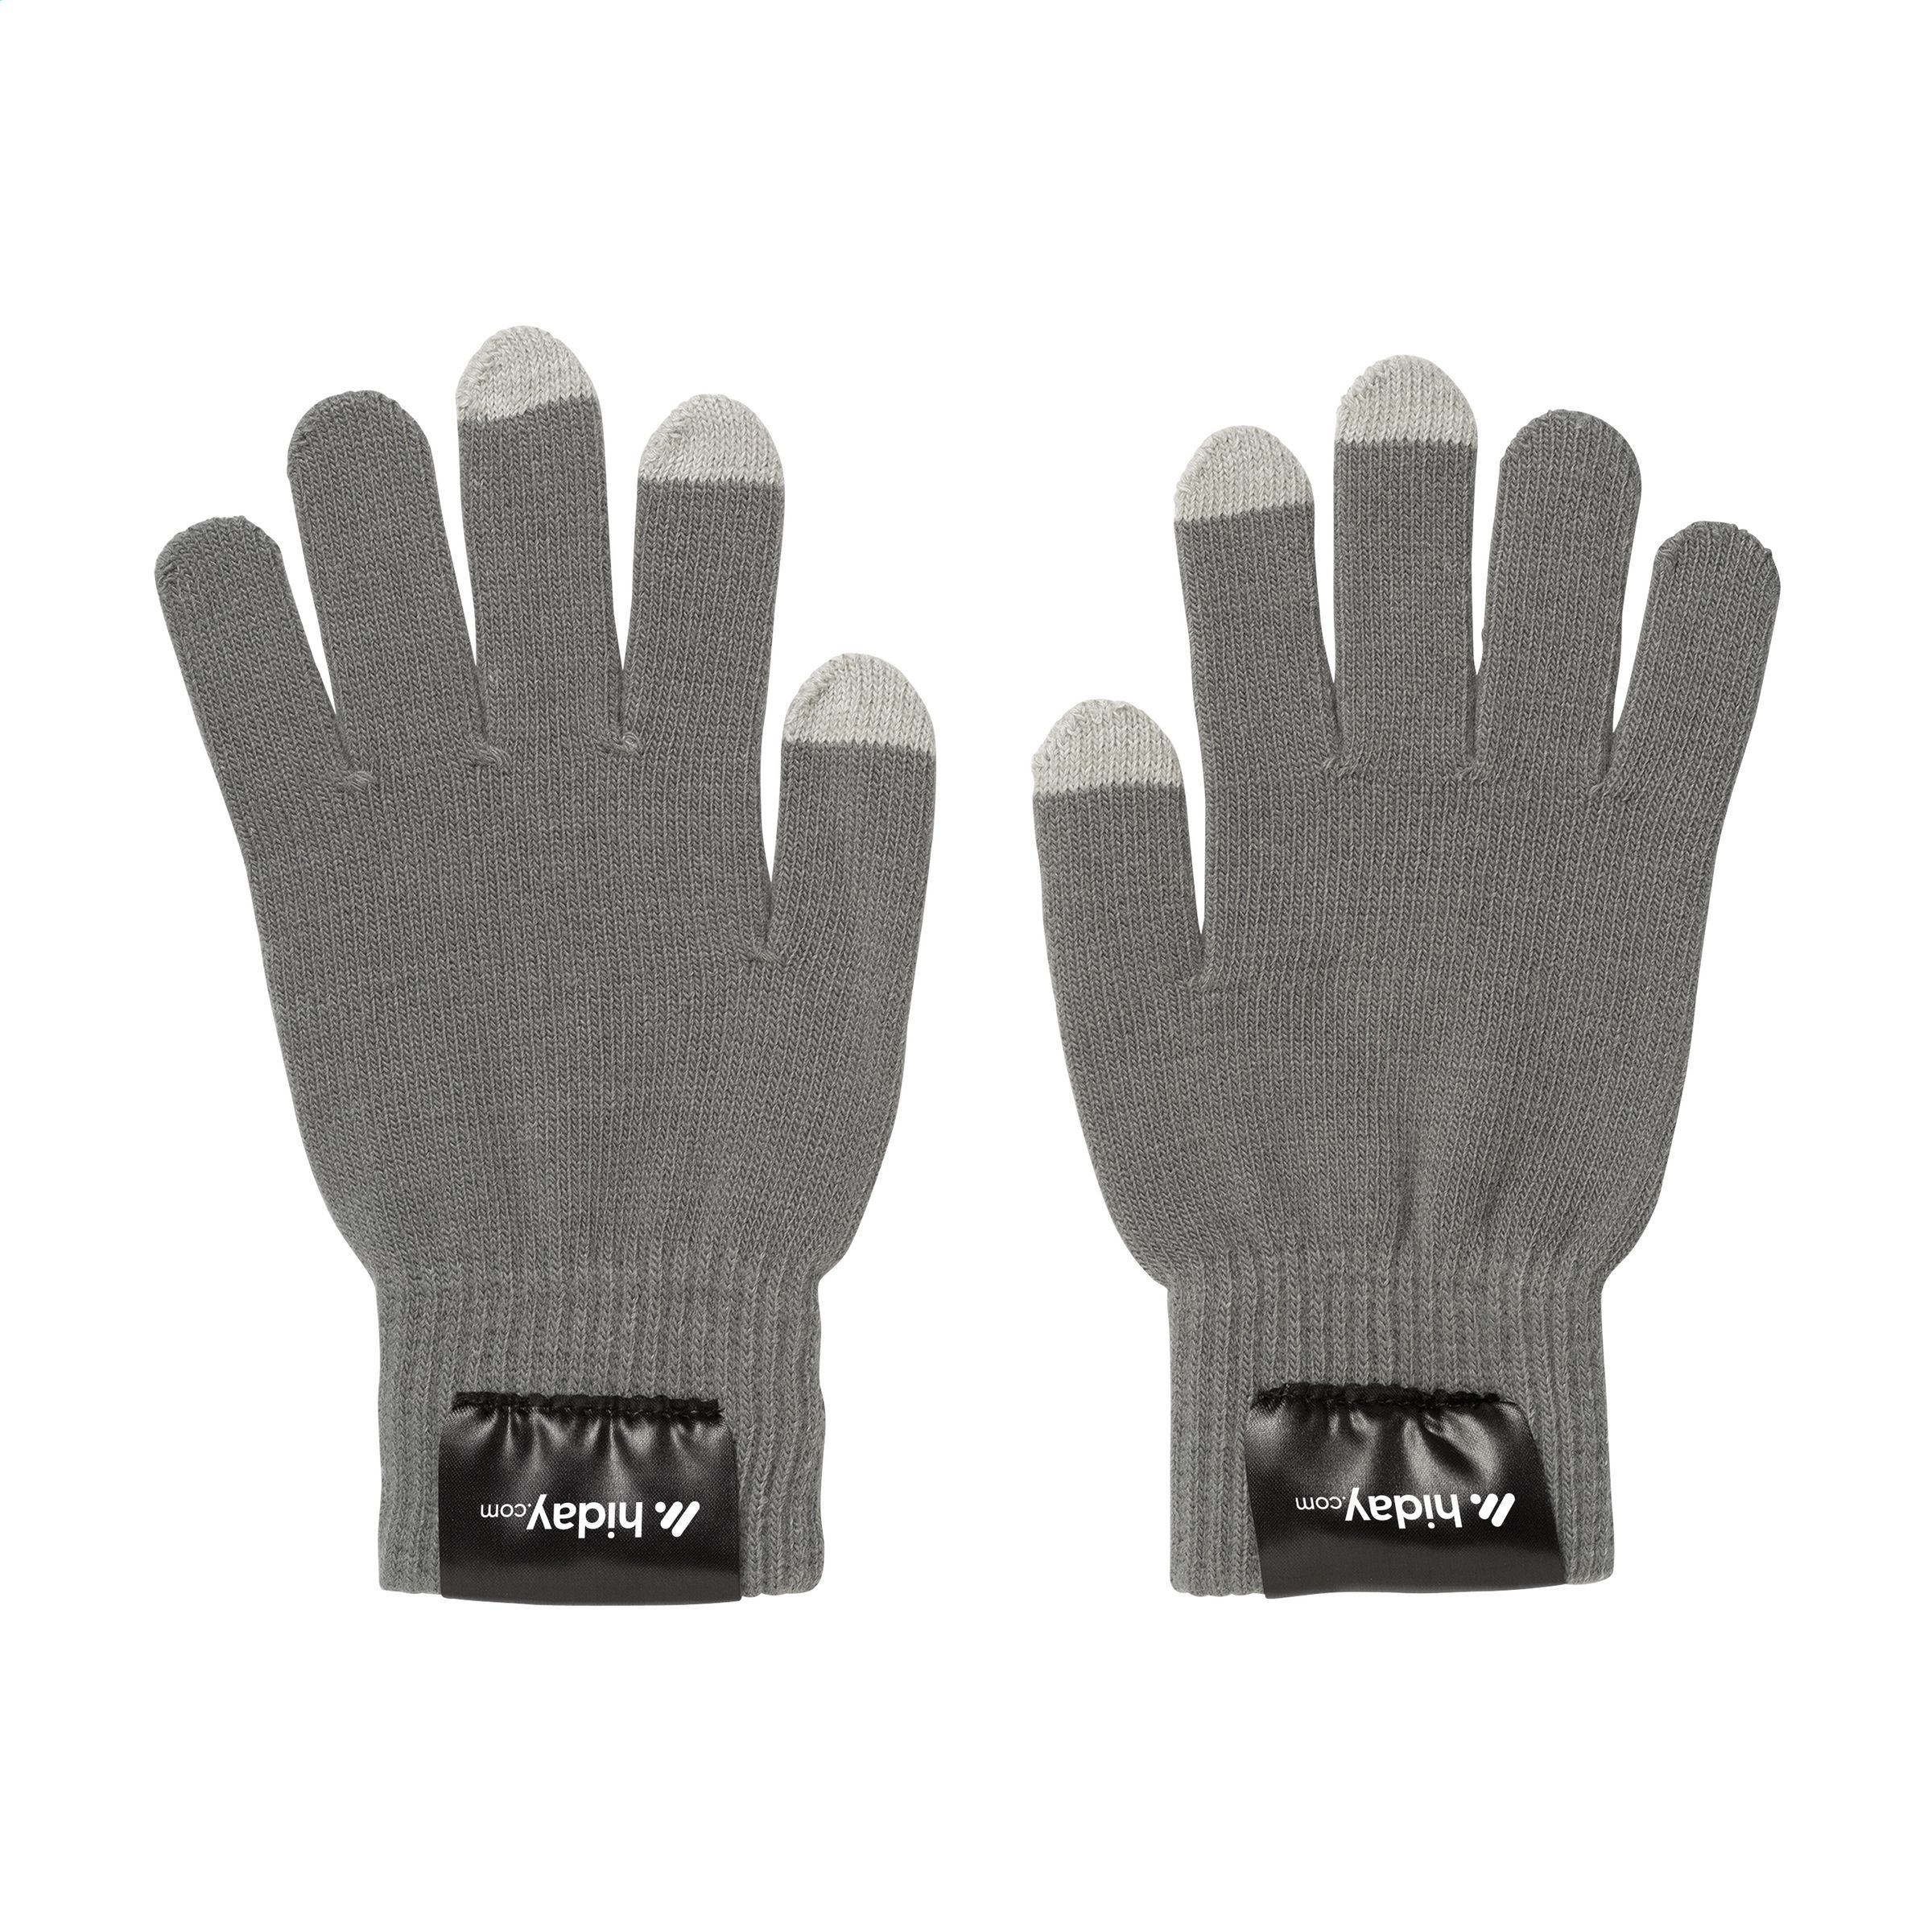 TouchGlove glove